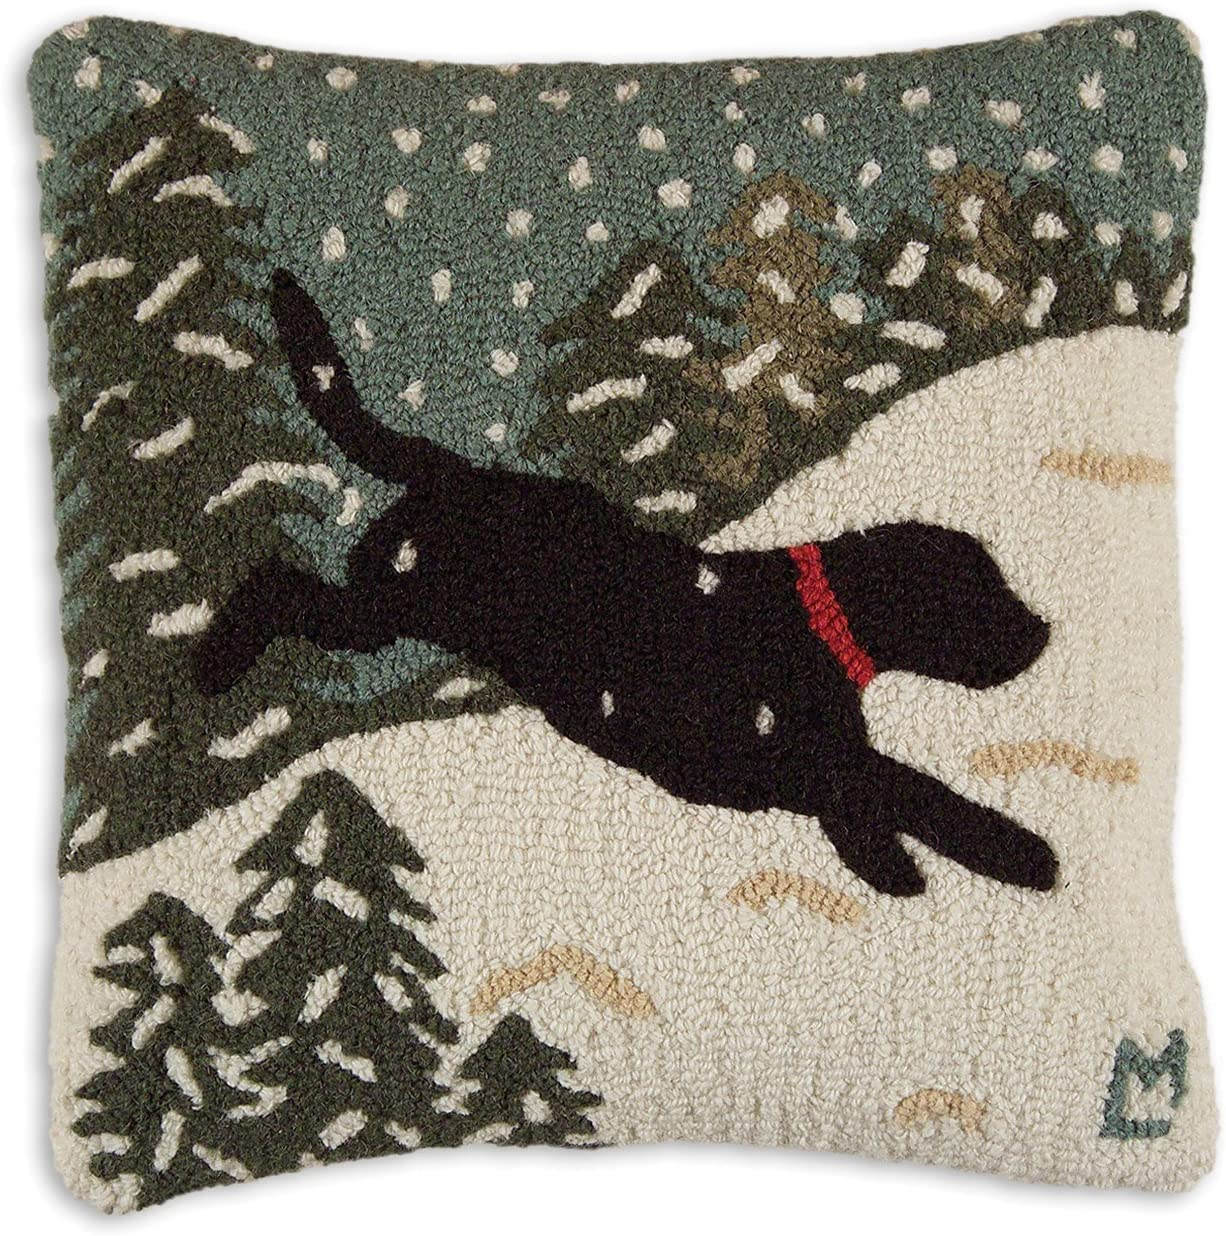 Chandler 4 Corners Artist-Designed Black Lab Dog Playing in Snow Hand-Hooked Wool Decorative Throw Pillow 18 x 18